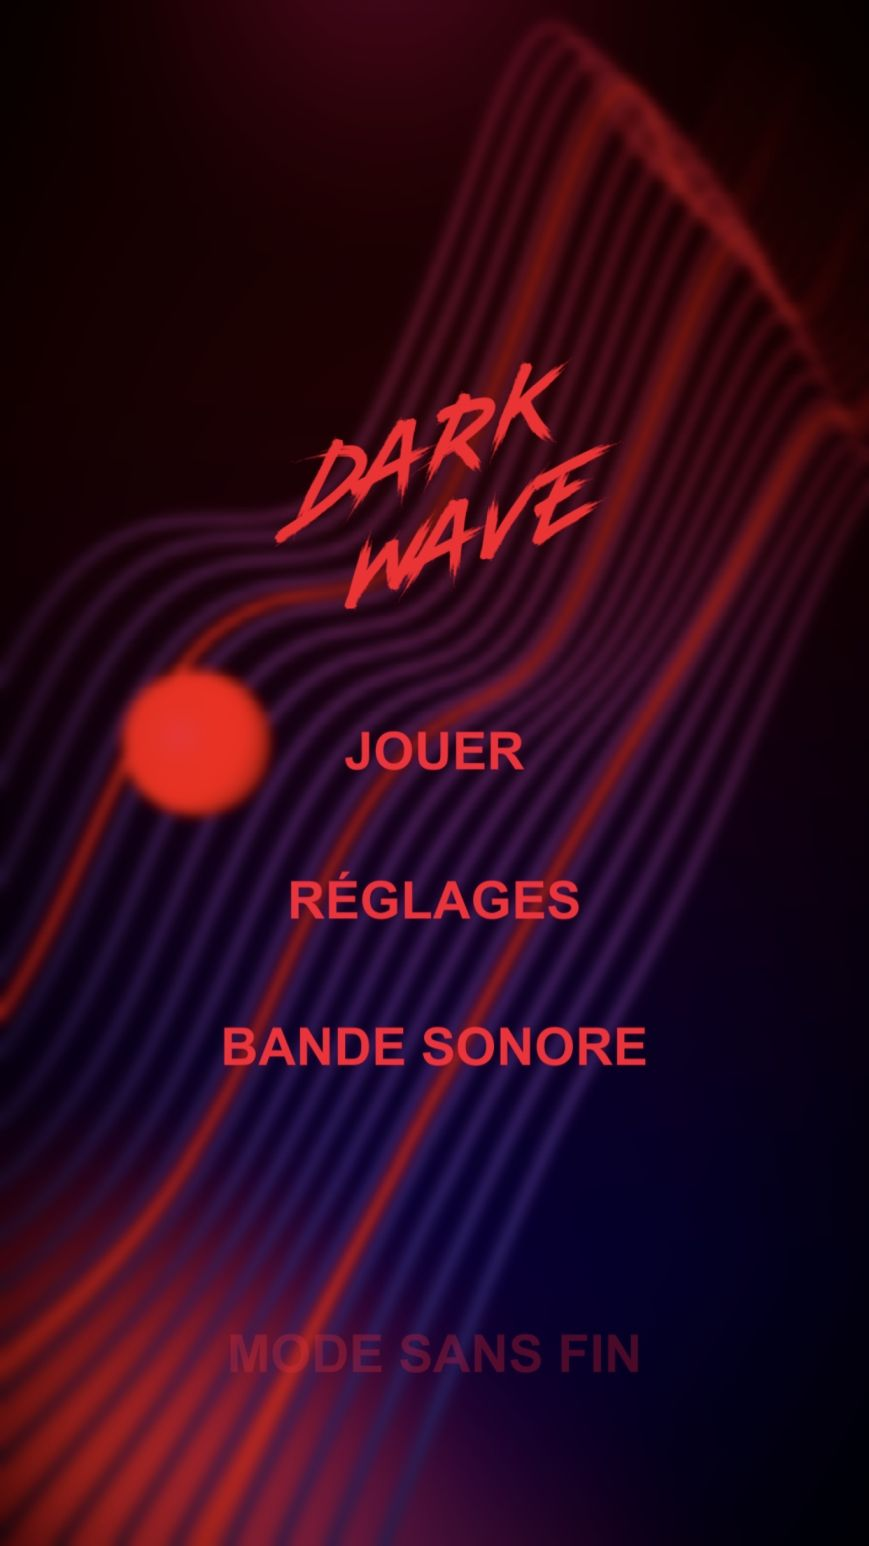 DARK WAVE (copie d'écran 1 sur iPhone / iPad / Apple TV)